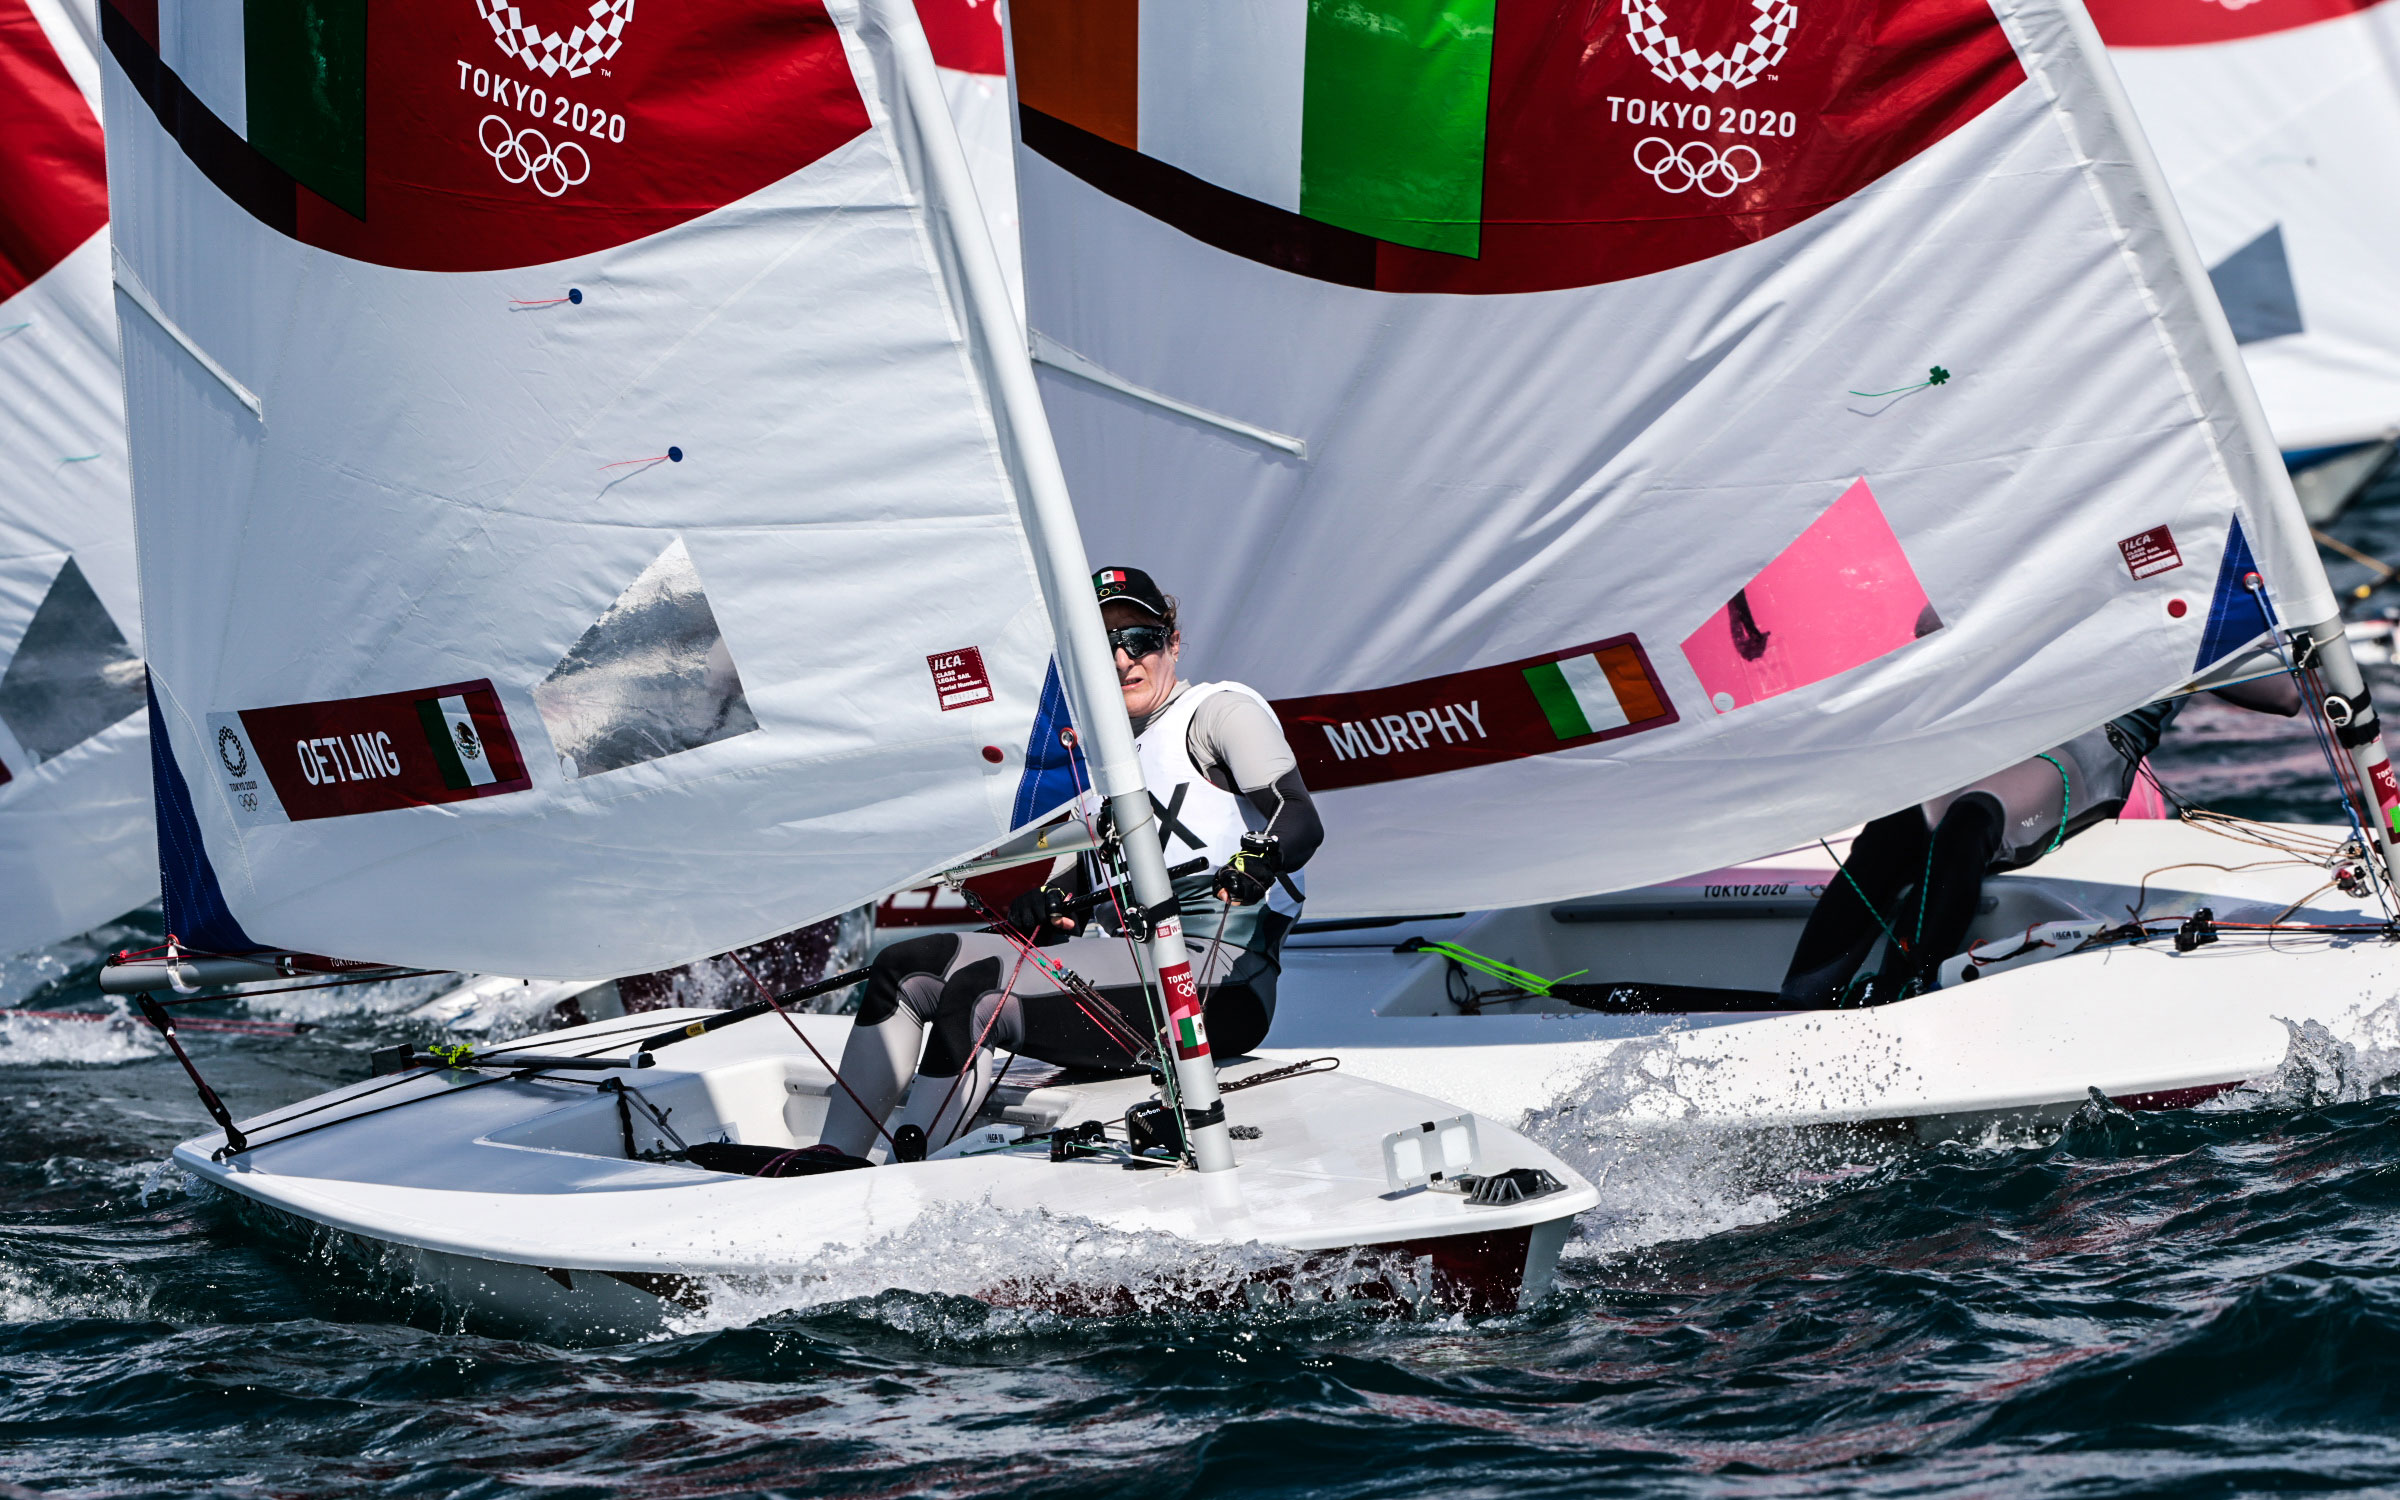 Olympic sailing: Struggles for the big names on day one - Yachting World